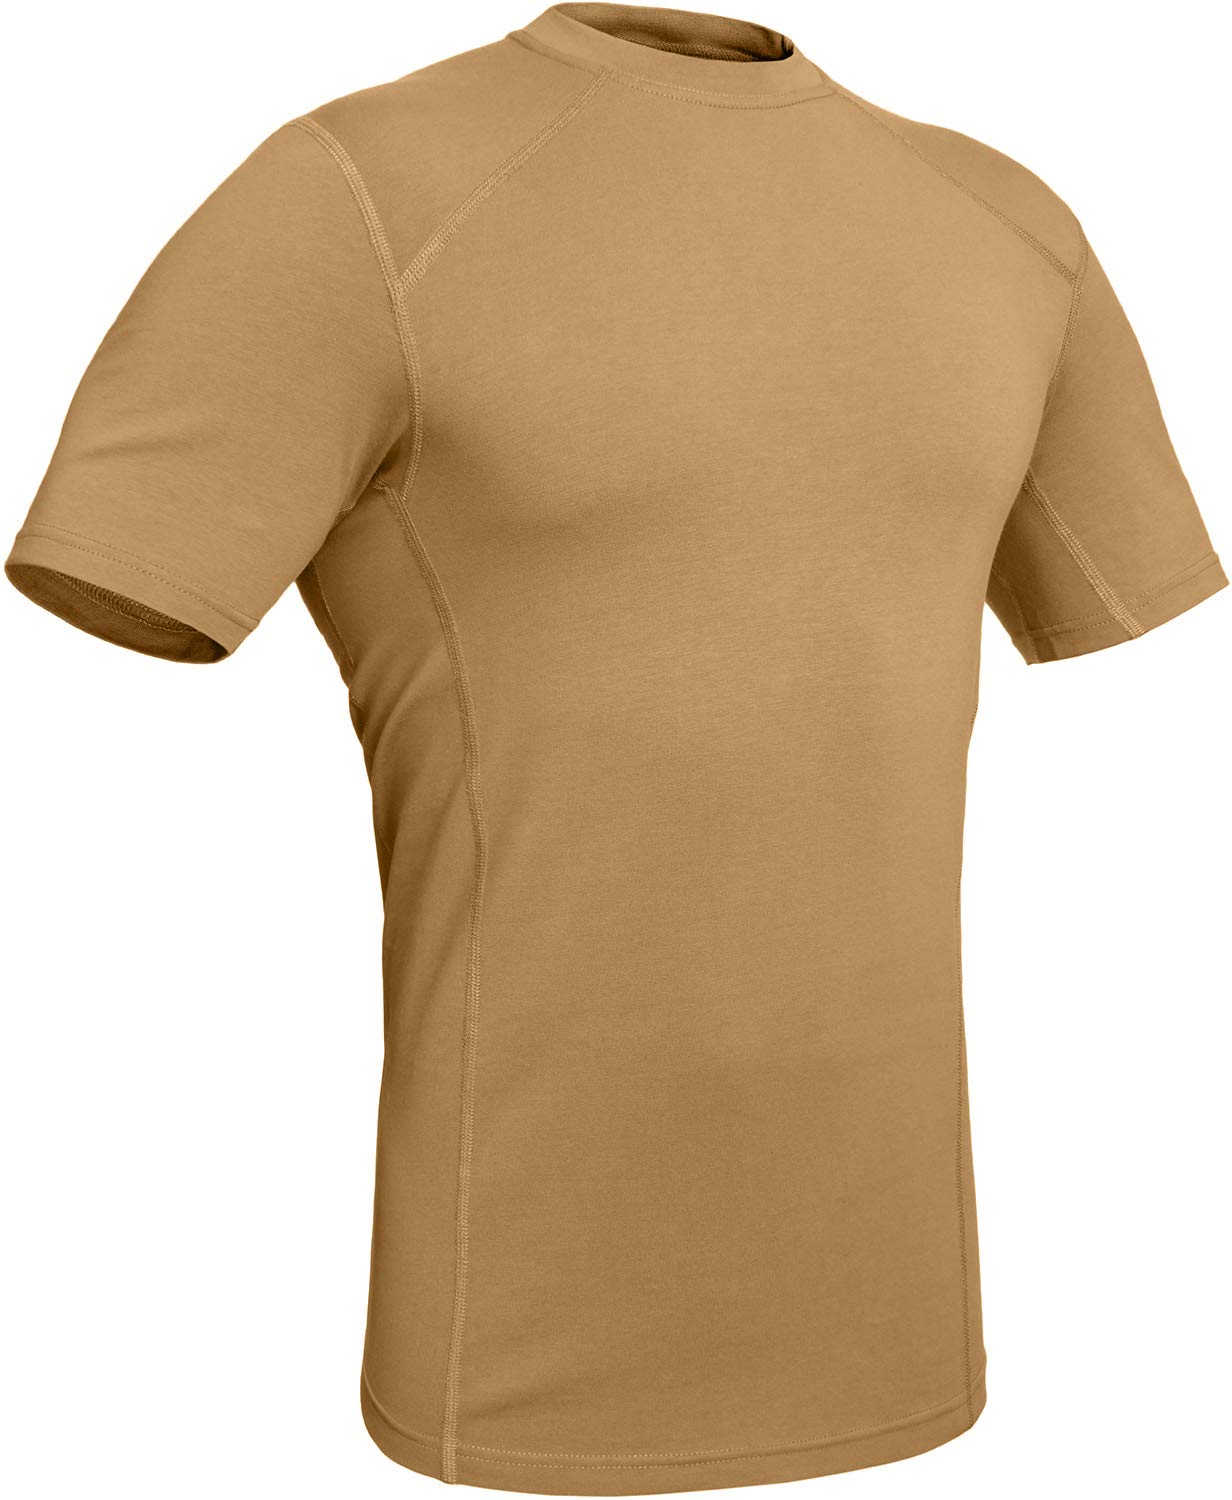 281Z Military Stretch Cotton Underwear T-Shirt - Tactical Hiking Outdoor - Punisher Combat Line (Coyote Brown, Medium)